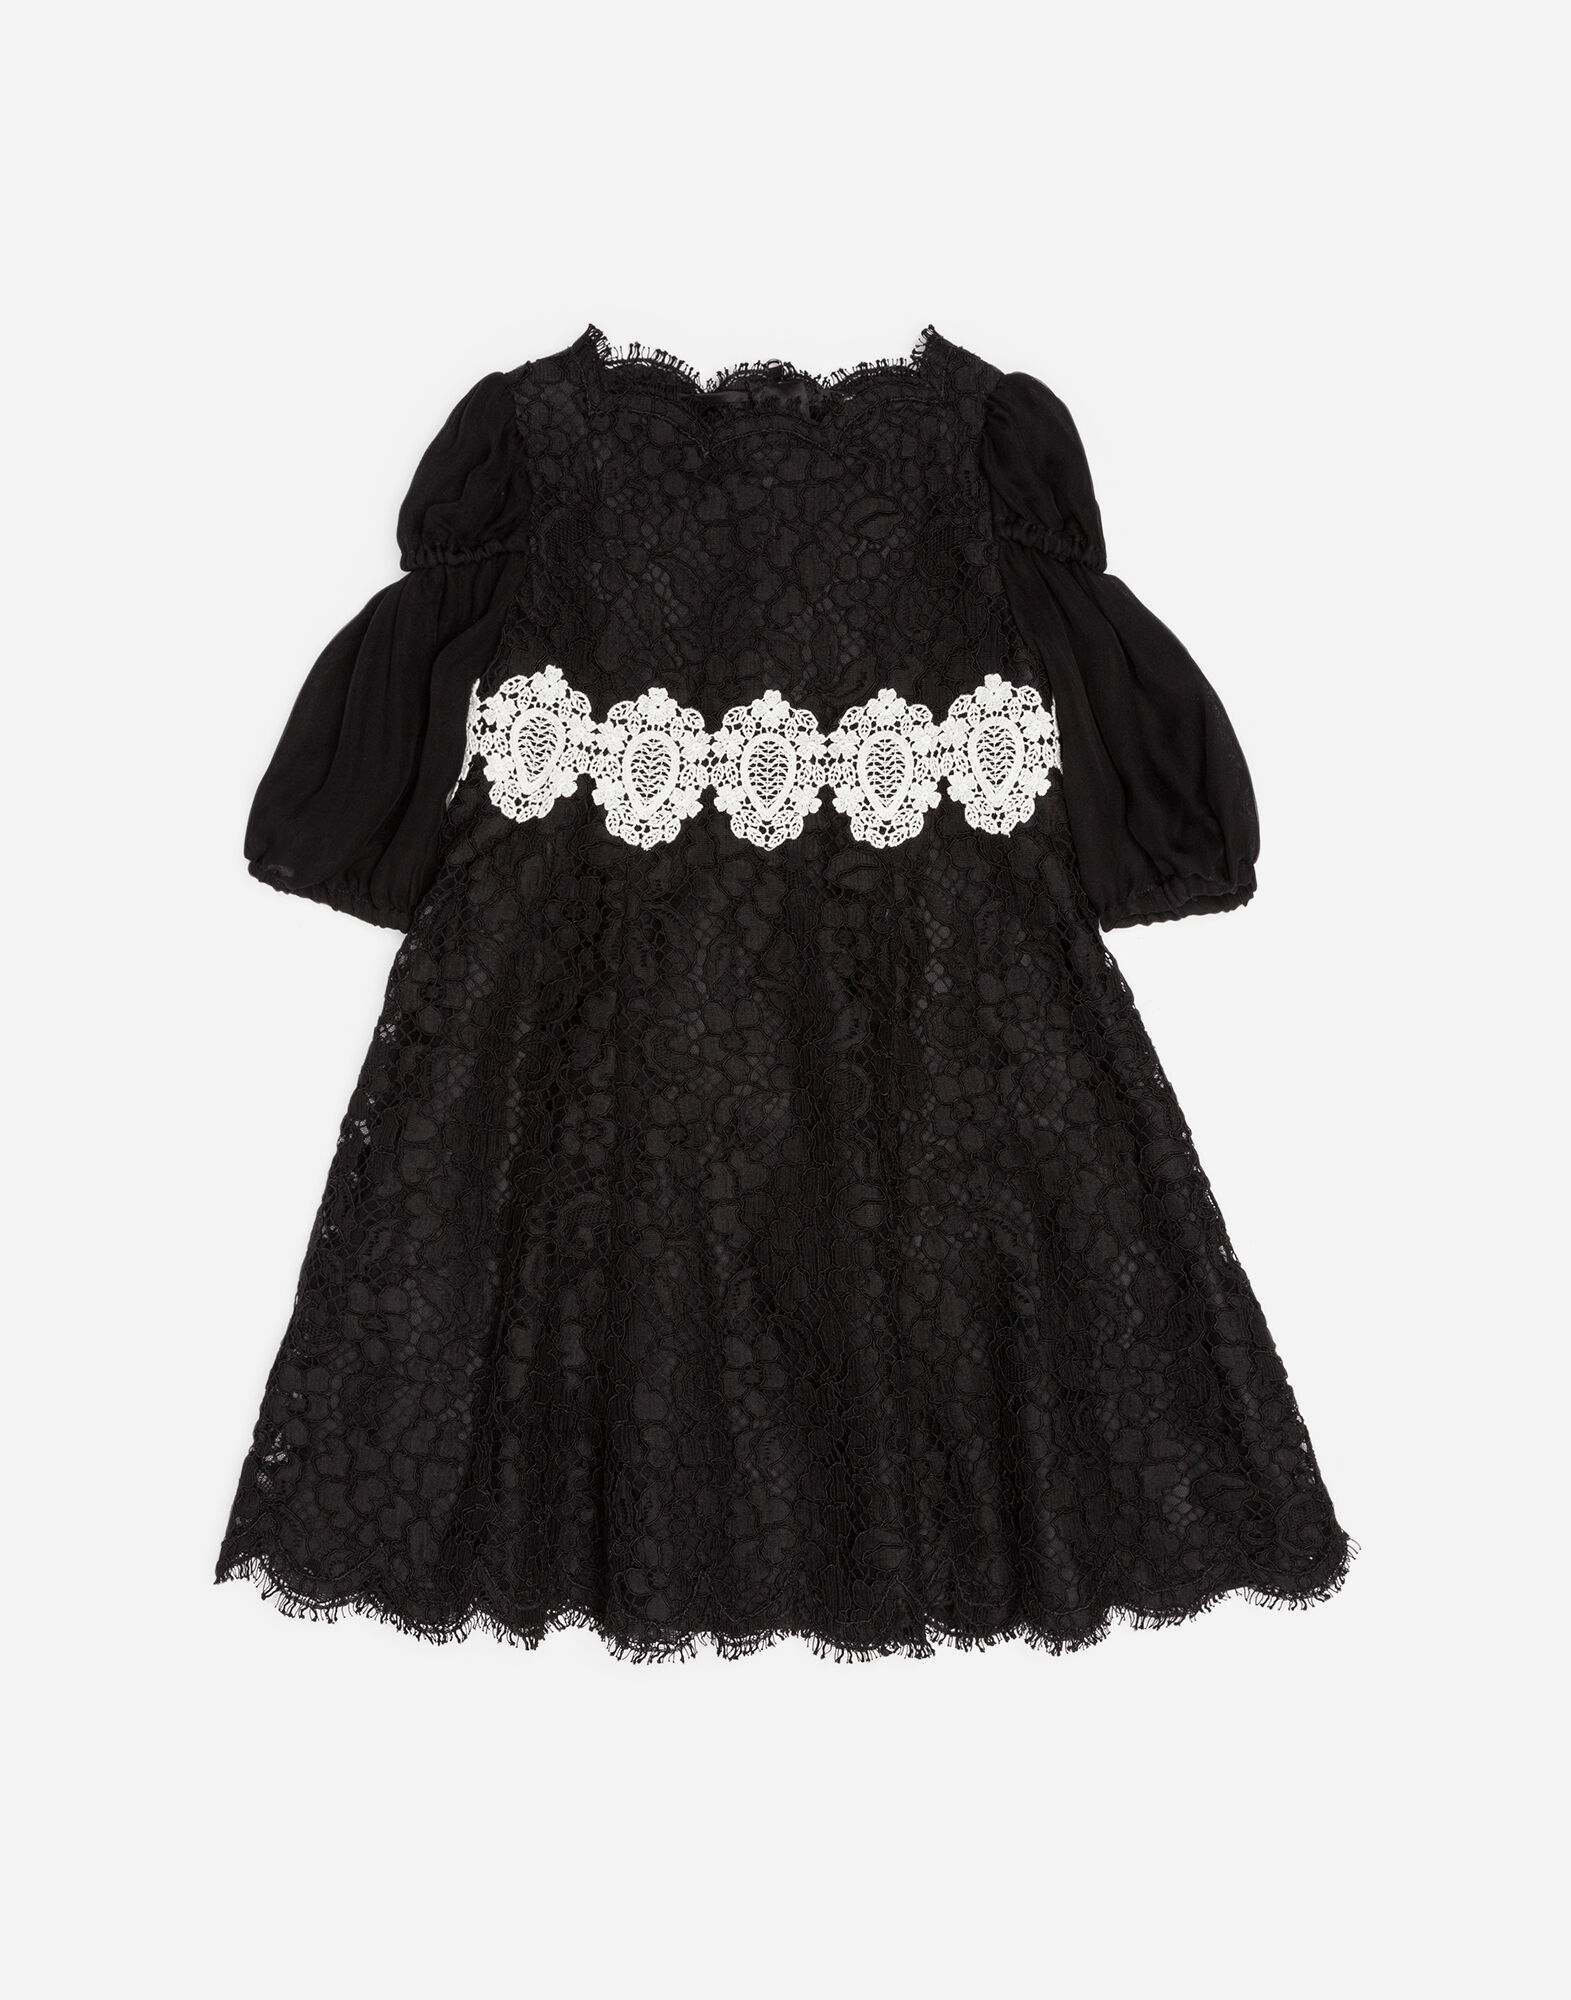 Dolce&Gabbana A-LINE DRESS IN CORDONETTO LACE